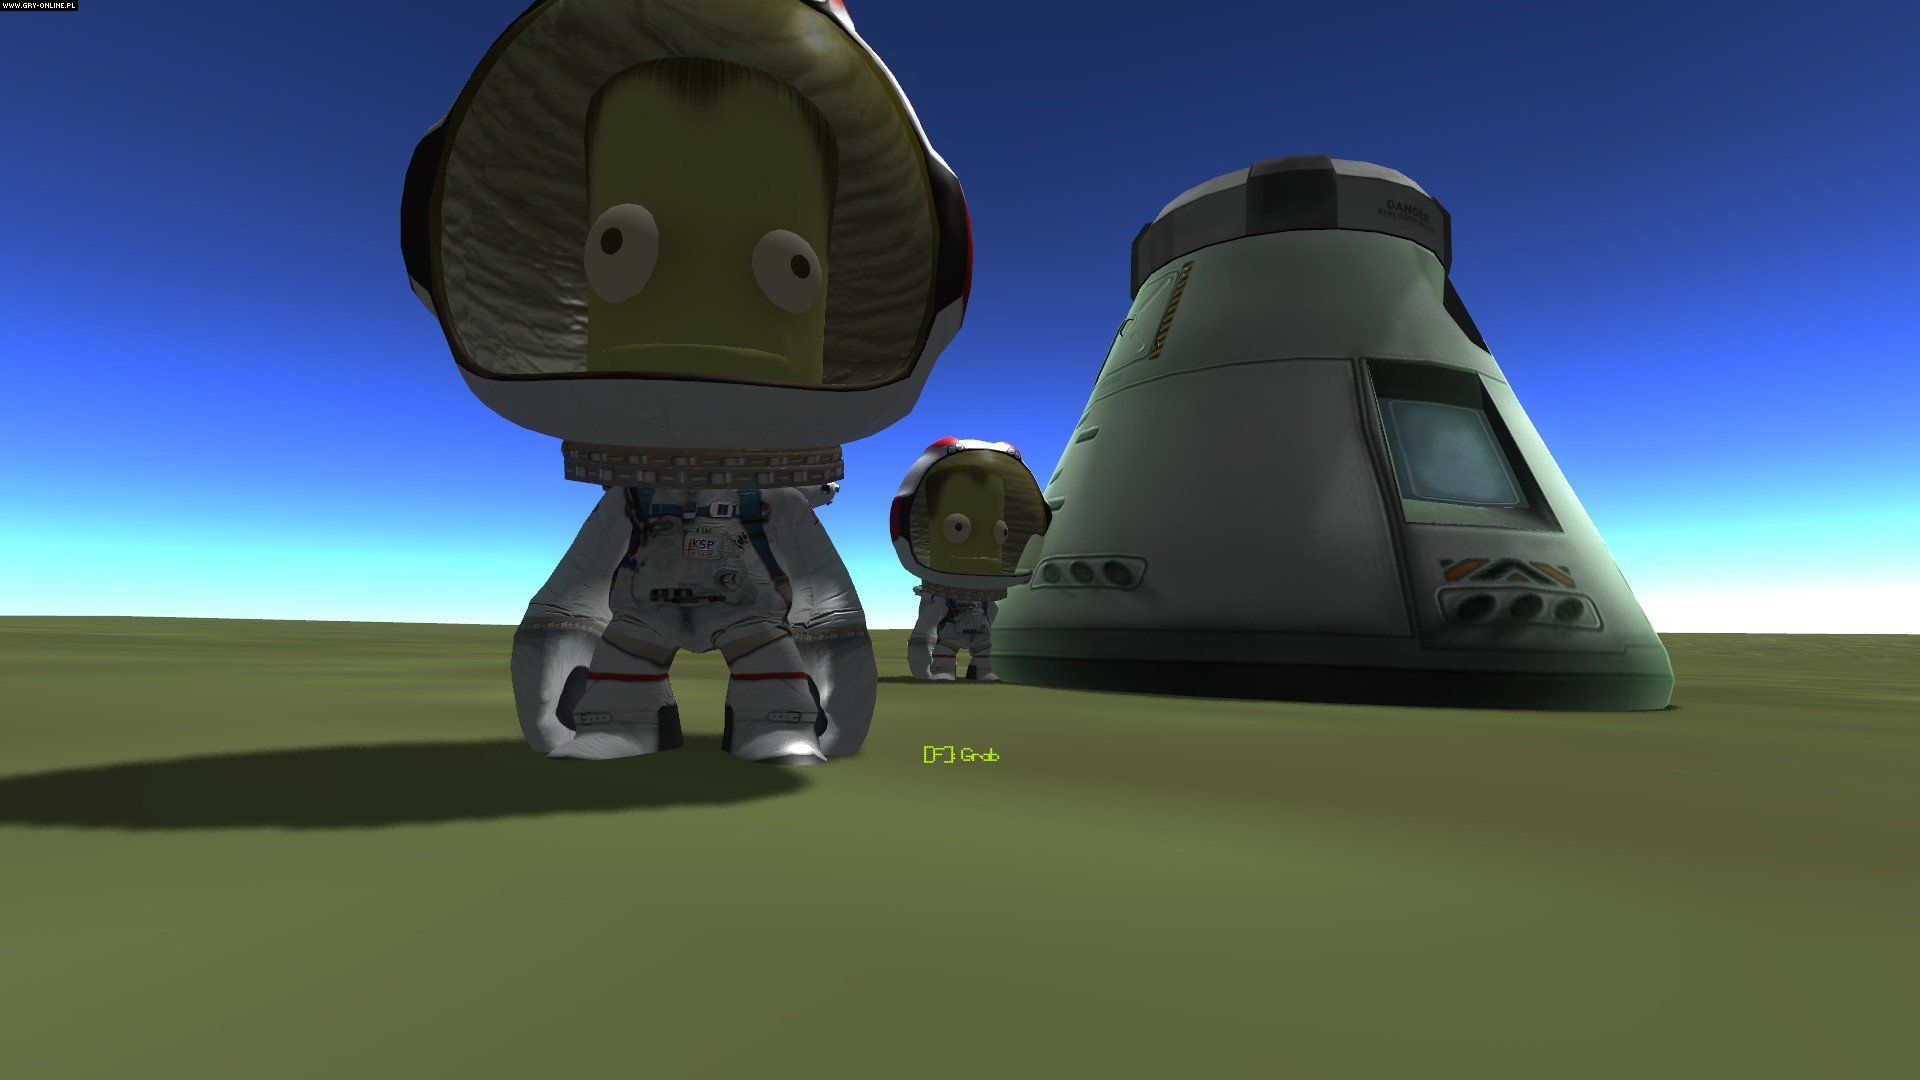 kerbal space program loading screen - photo #29